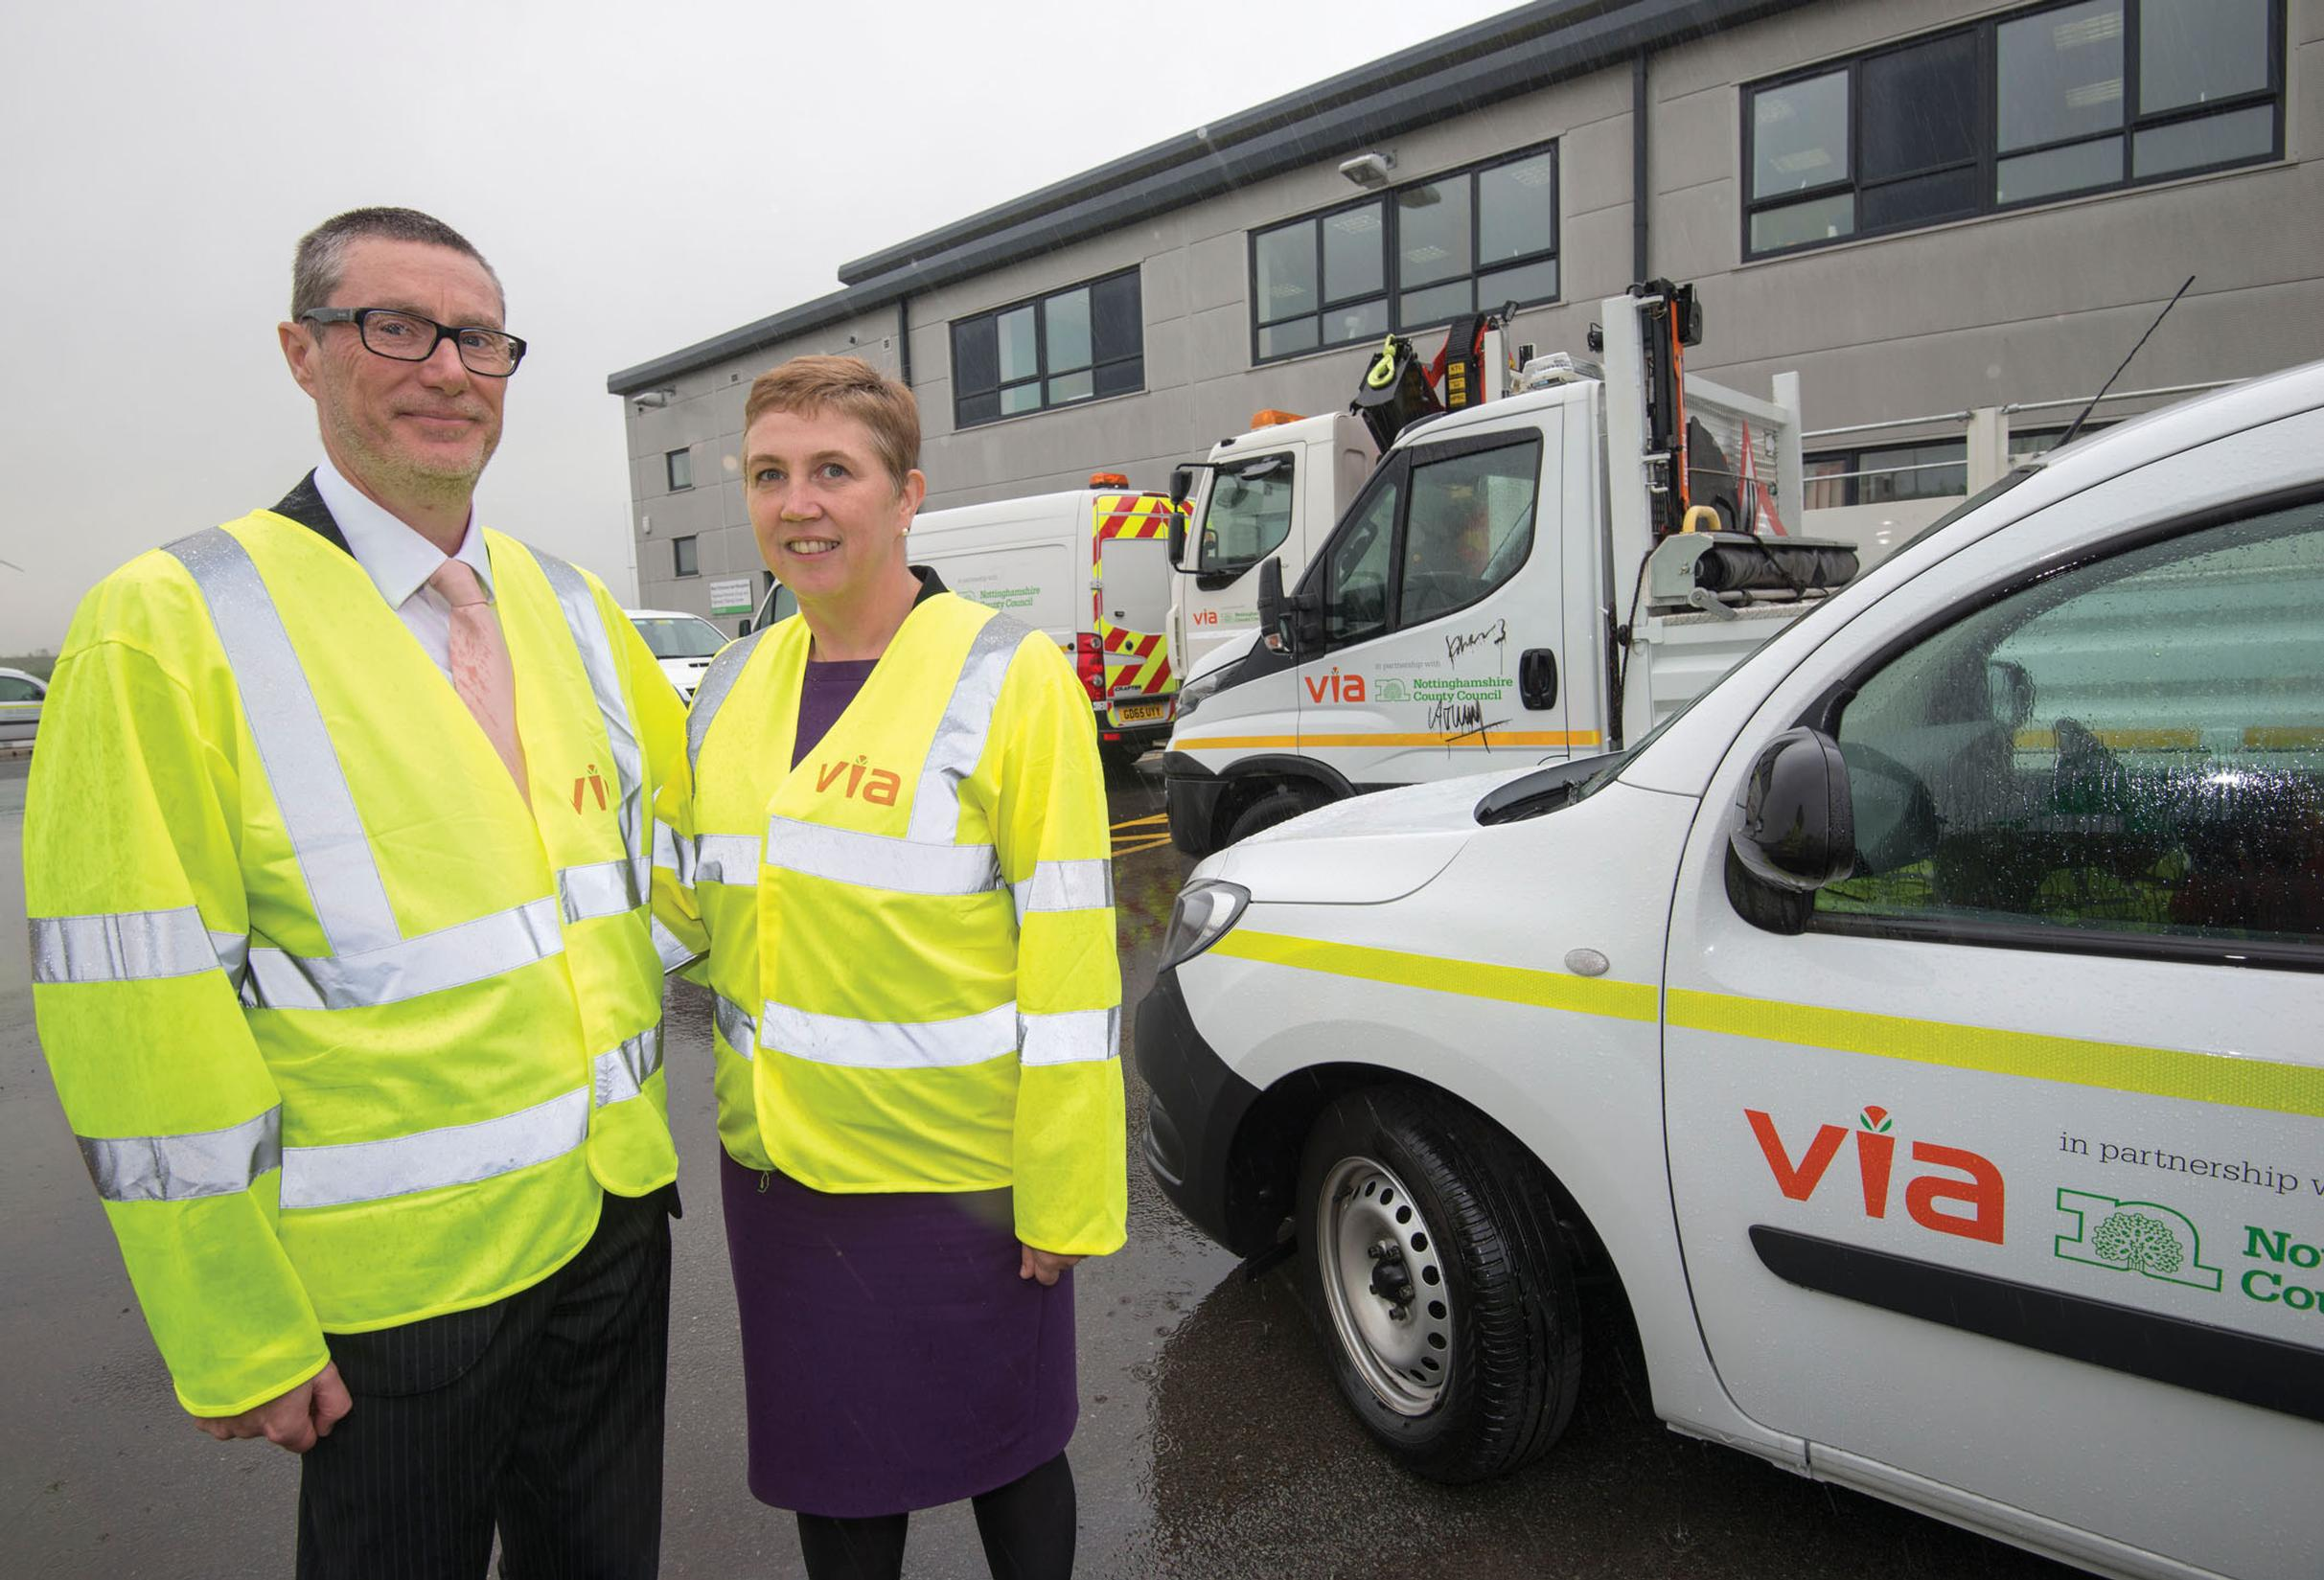 Chief executive of Nottinghamshire County Council Anthony May and Cornwall's chief executive Kate Kennally launch the fleet of newly-branded Via vehicles